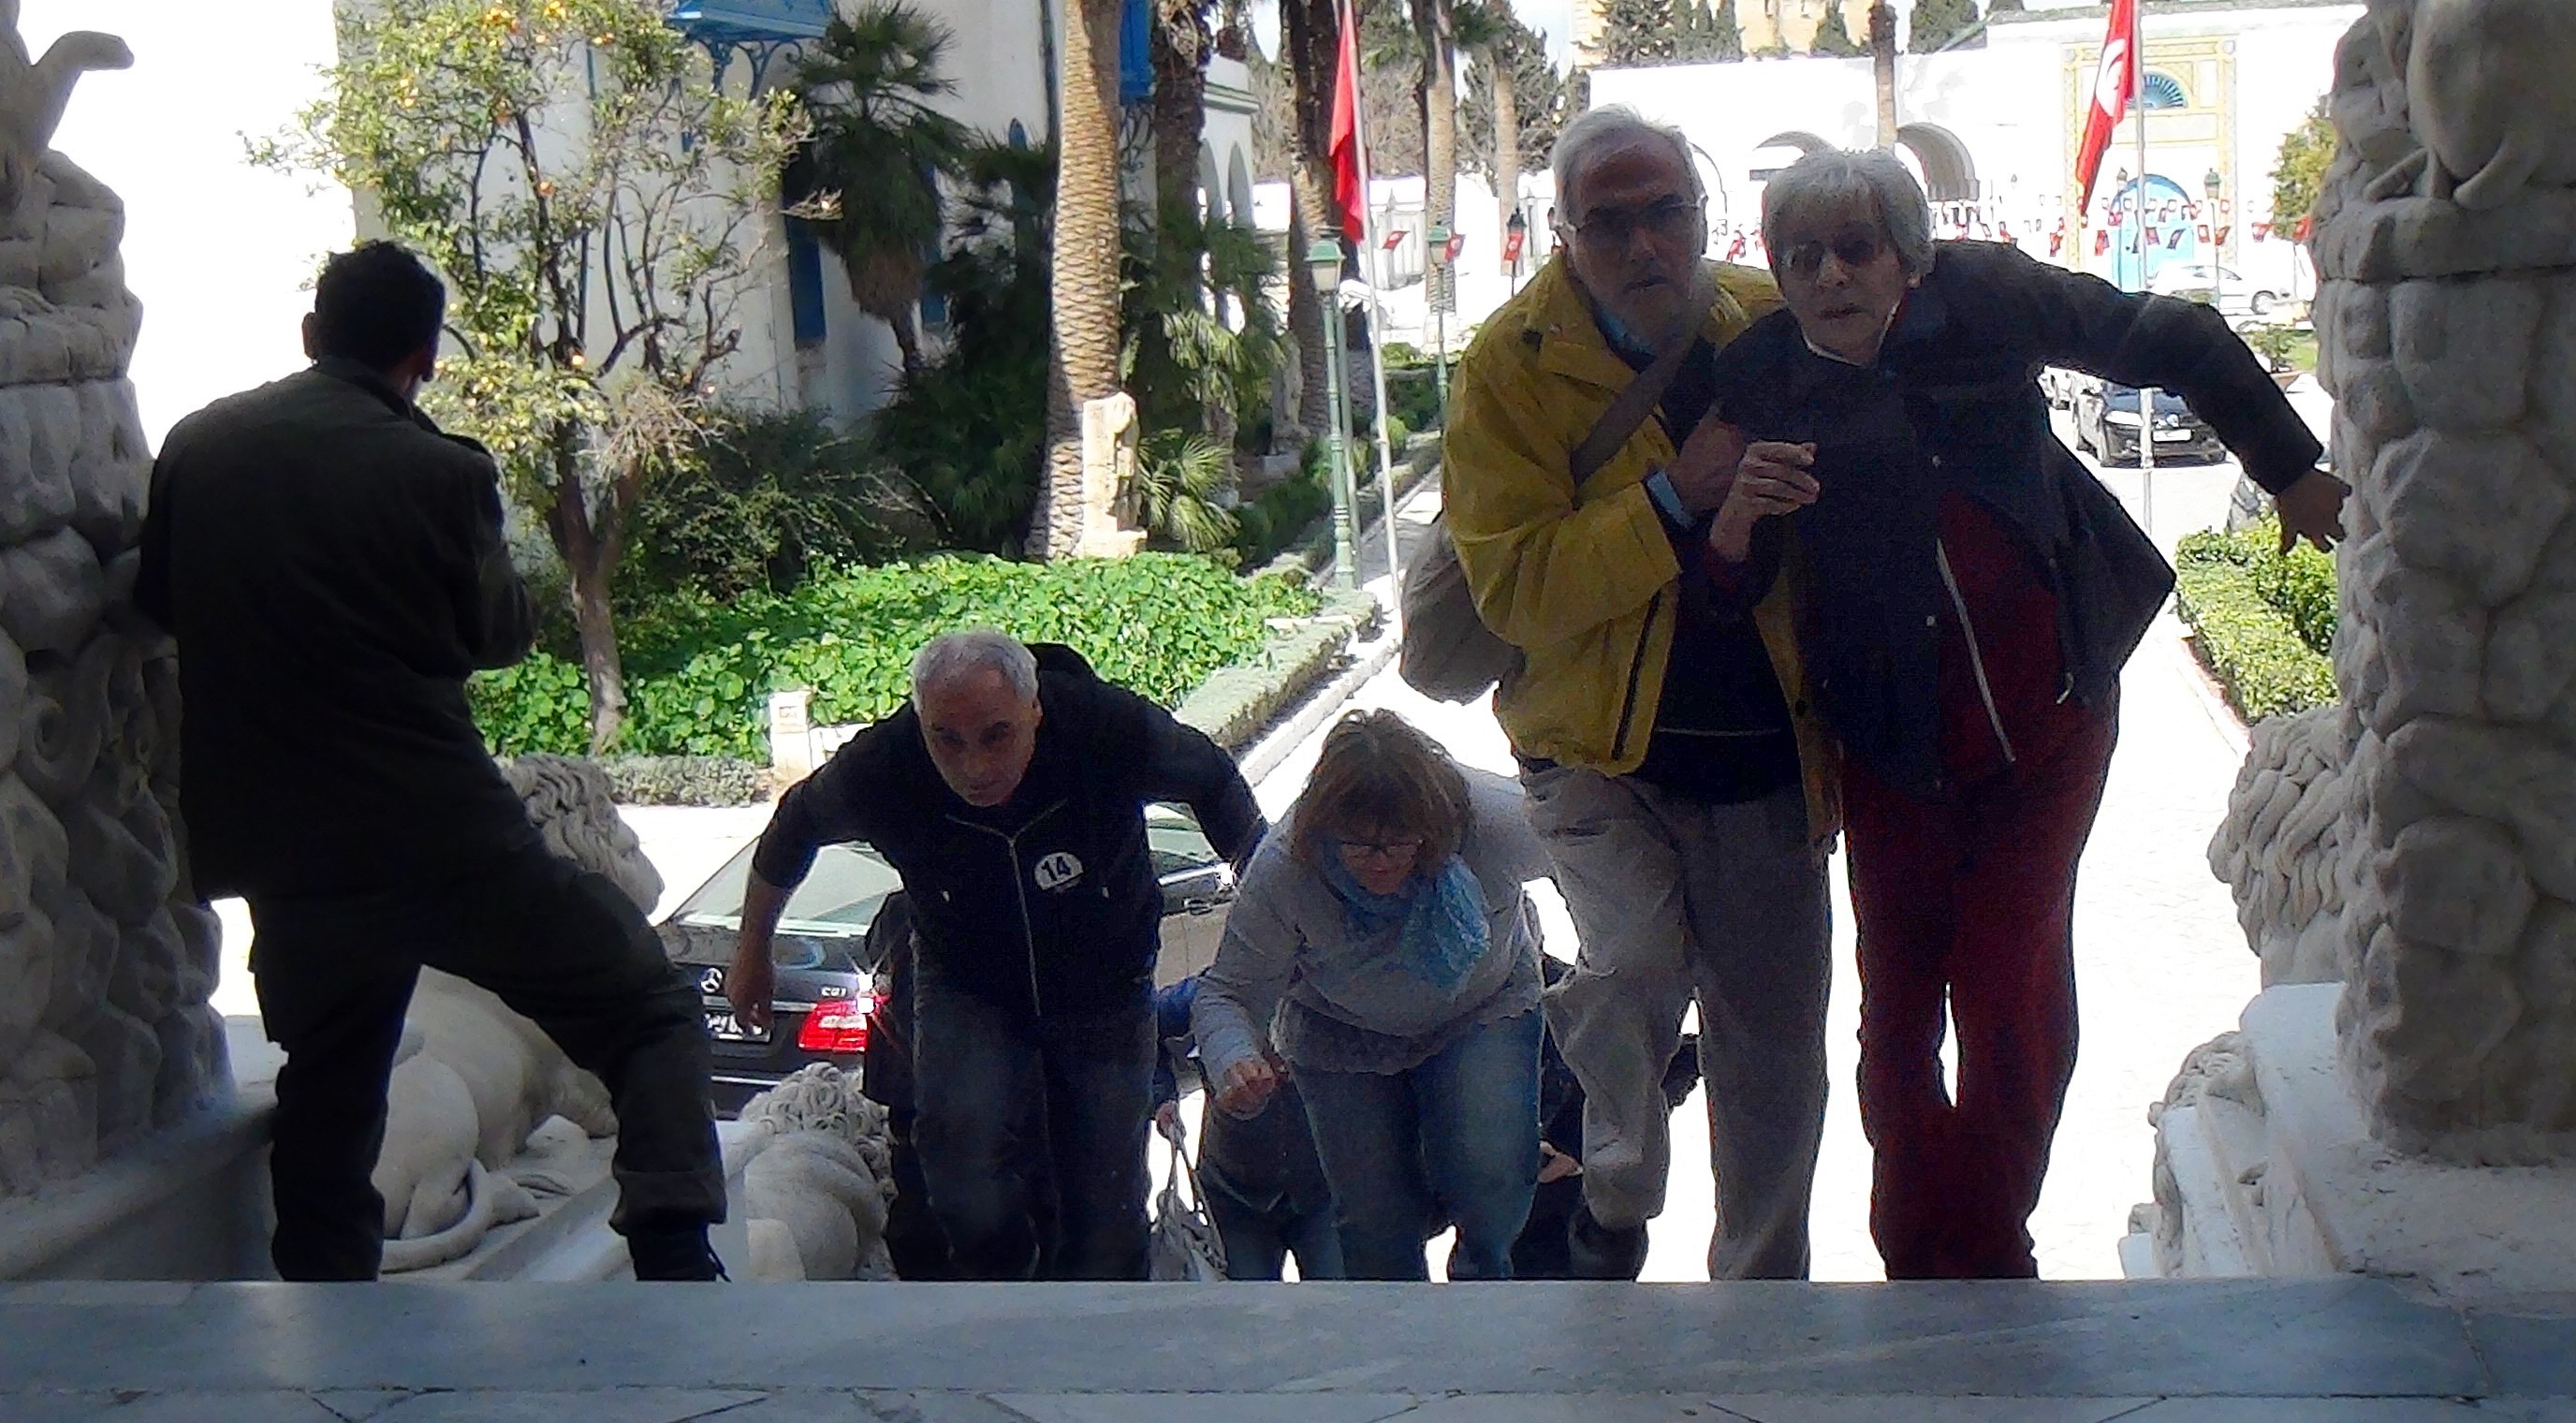 Museum-attack hostages are seen after Tunisian Security forces start an operation as gunmen reportedly took hostages at the Bardo Museum in Tunis on March 18, 2015.